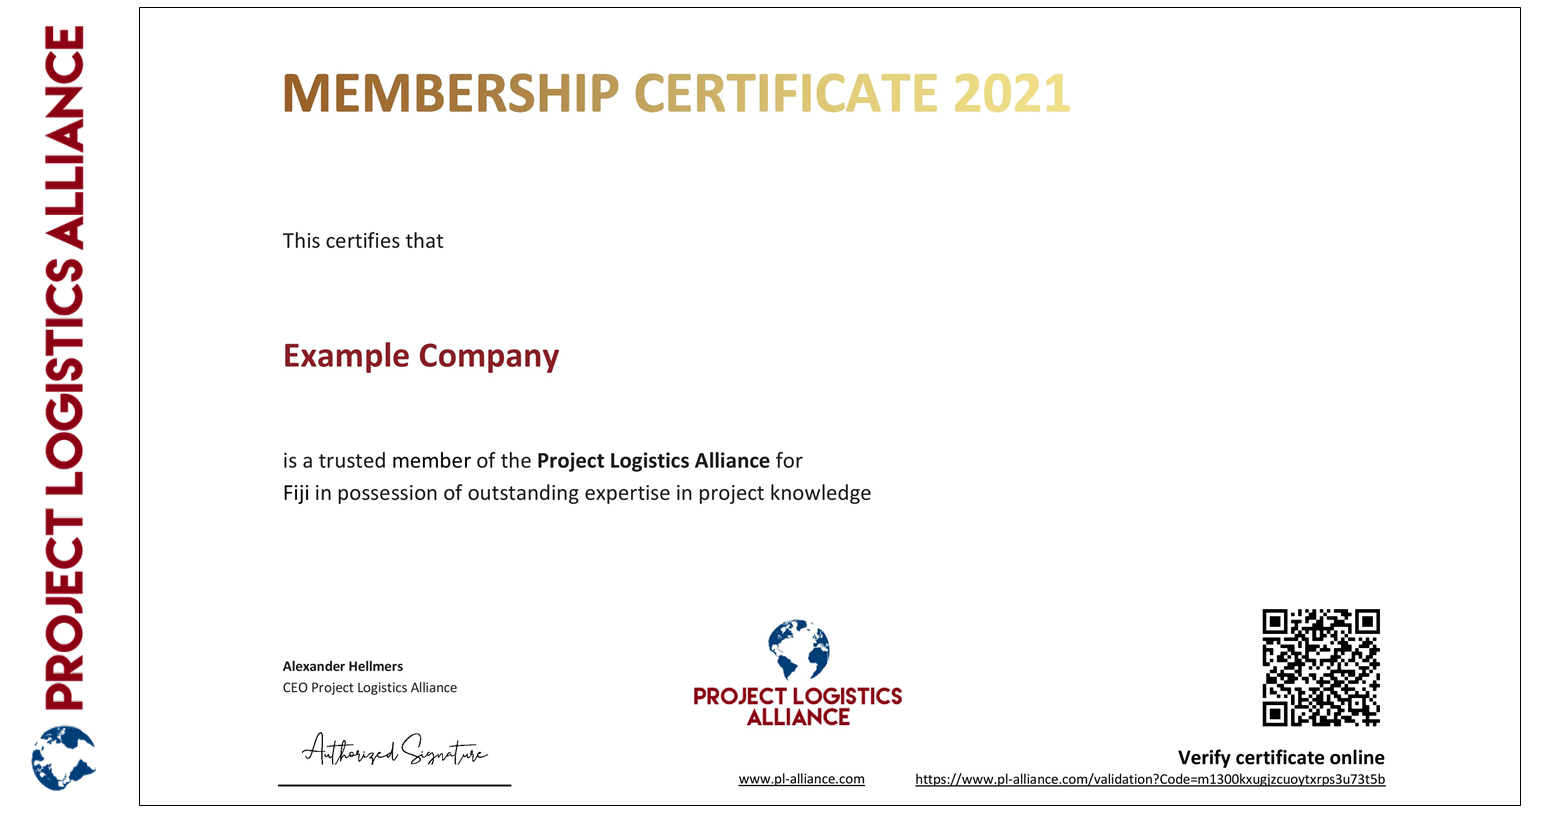 Project Logistics Alliance Launches Digitally Verifiable Certificates